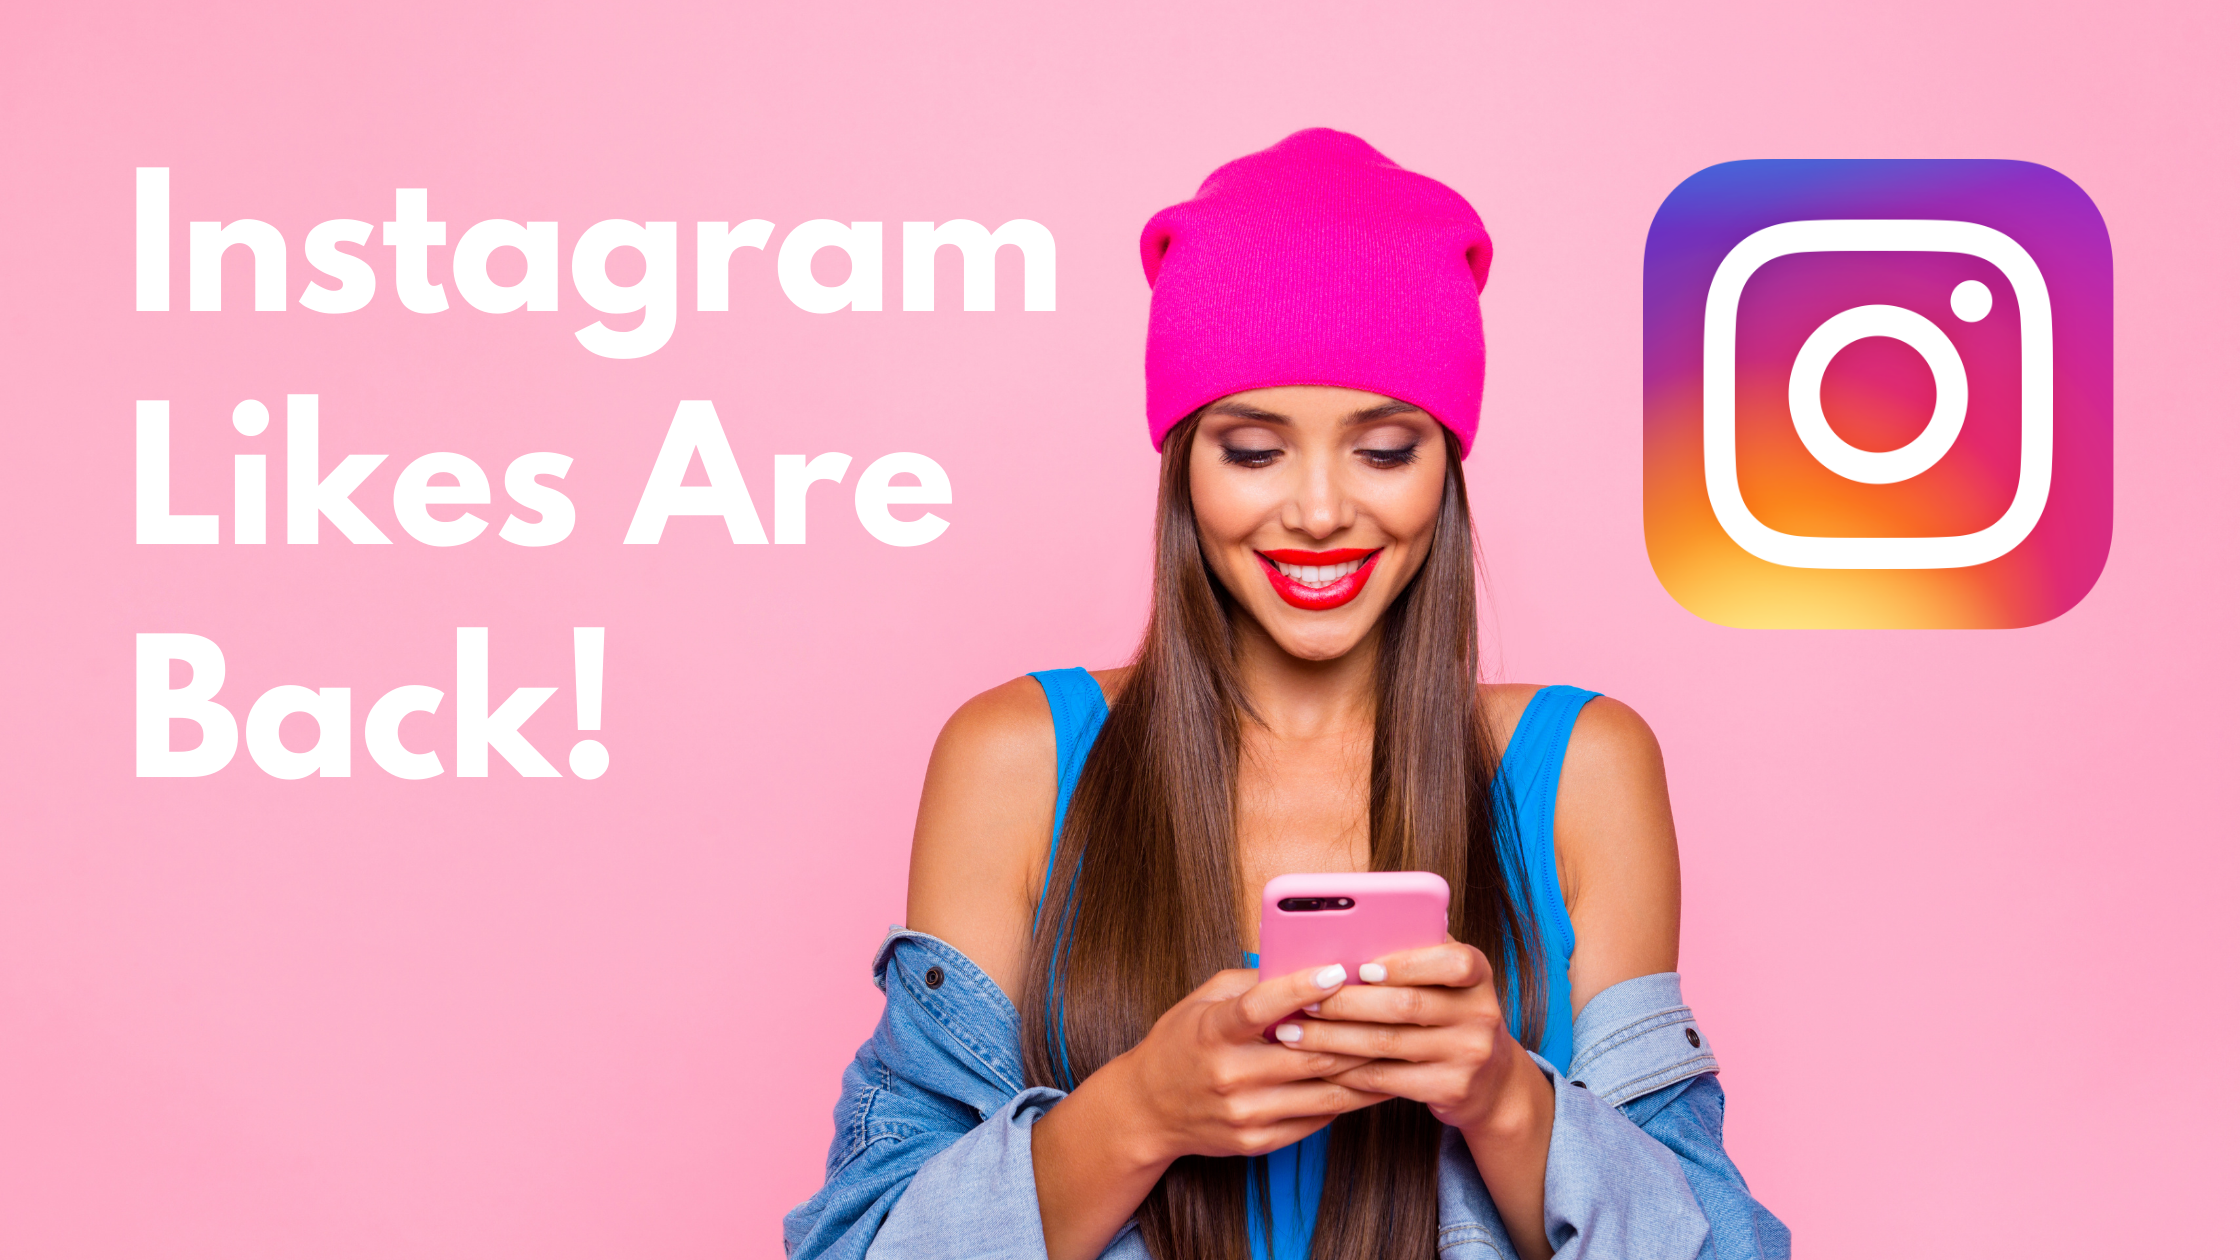 Instagram Likes Are Back